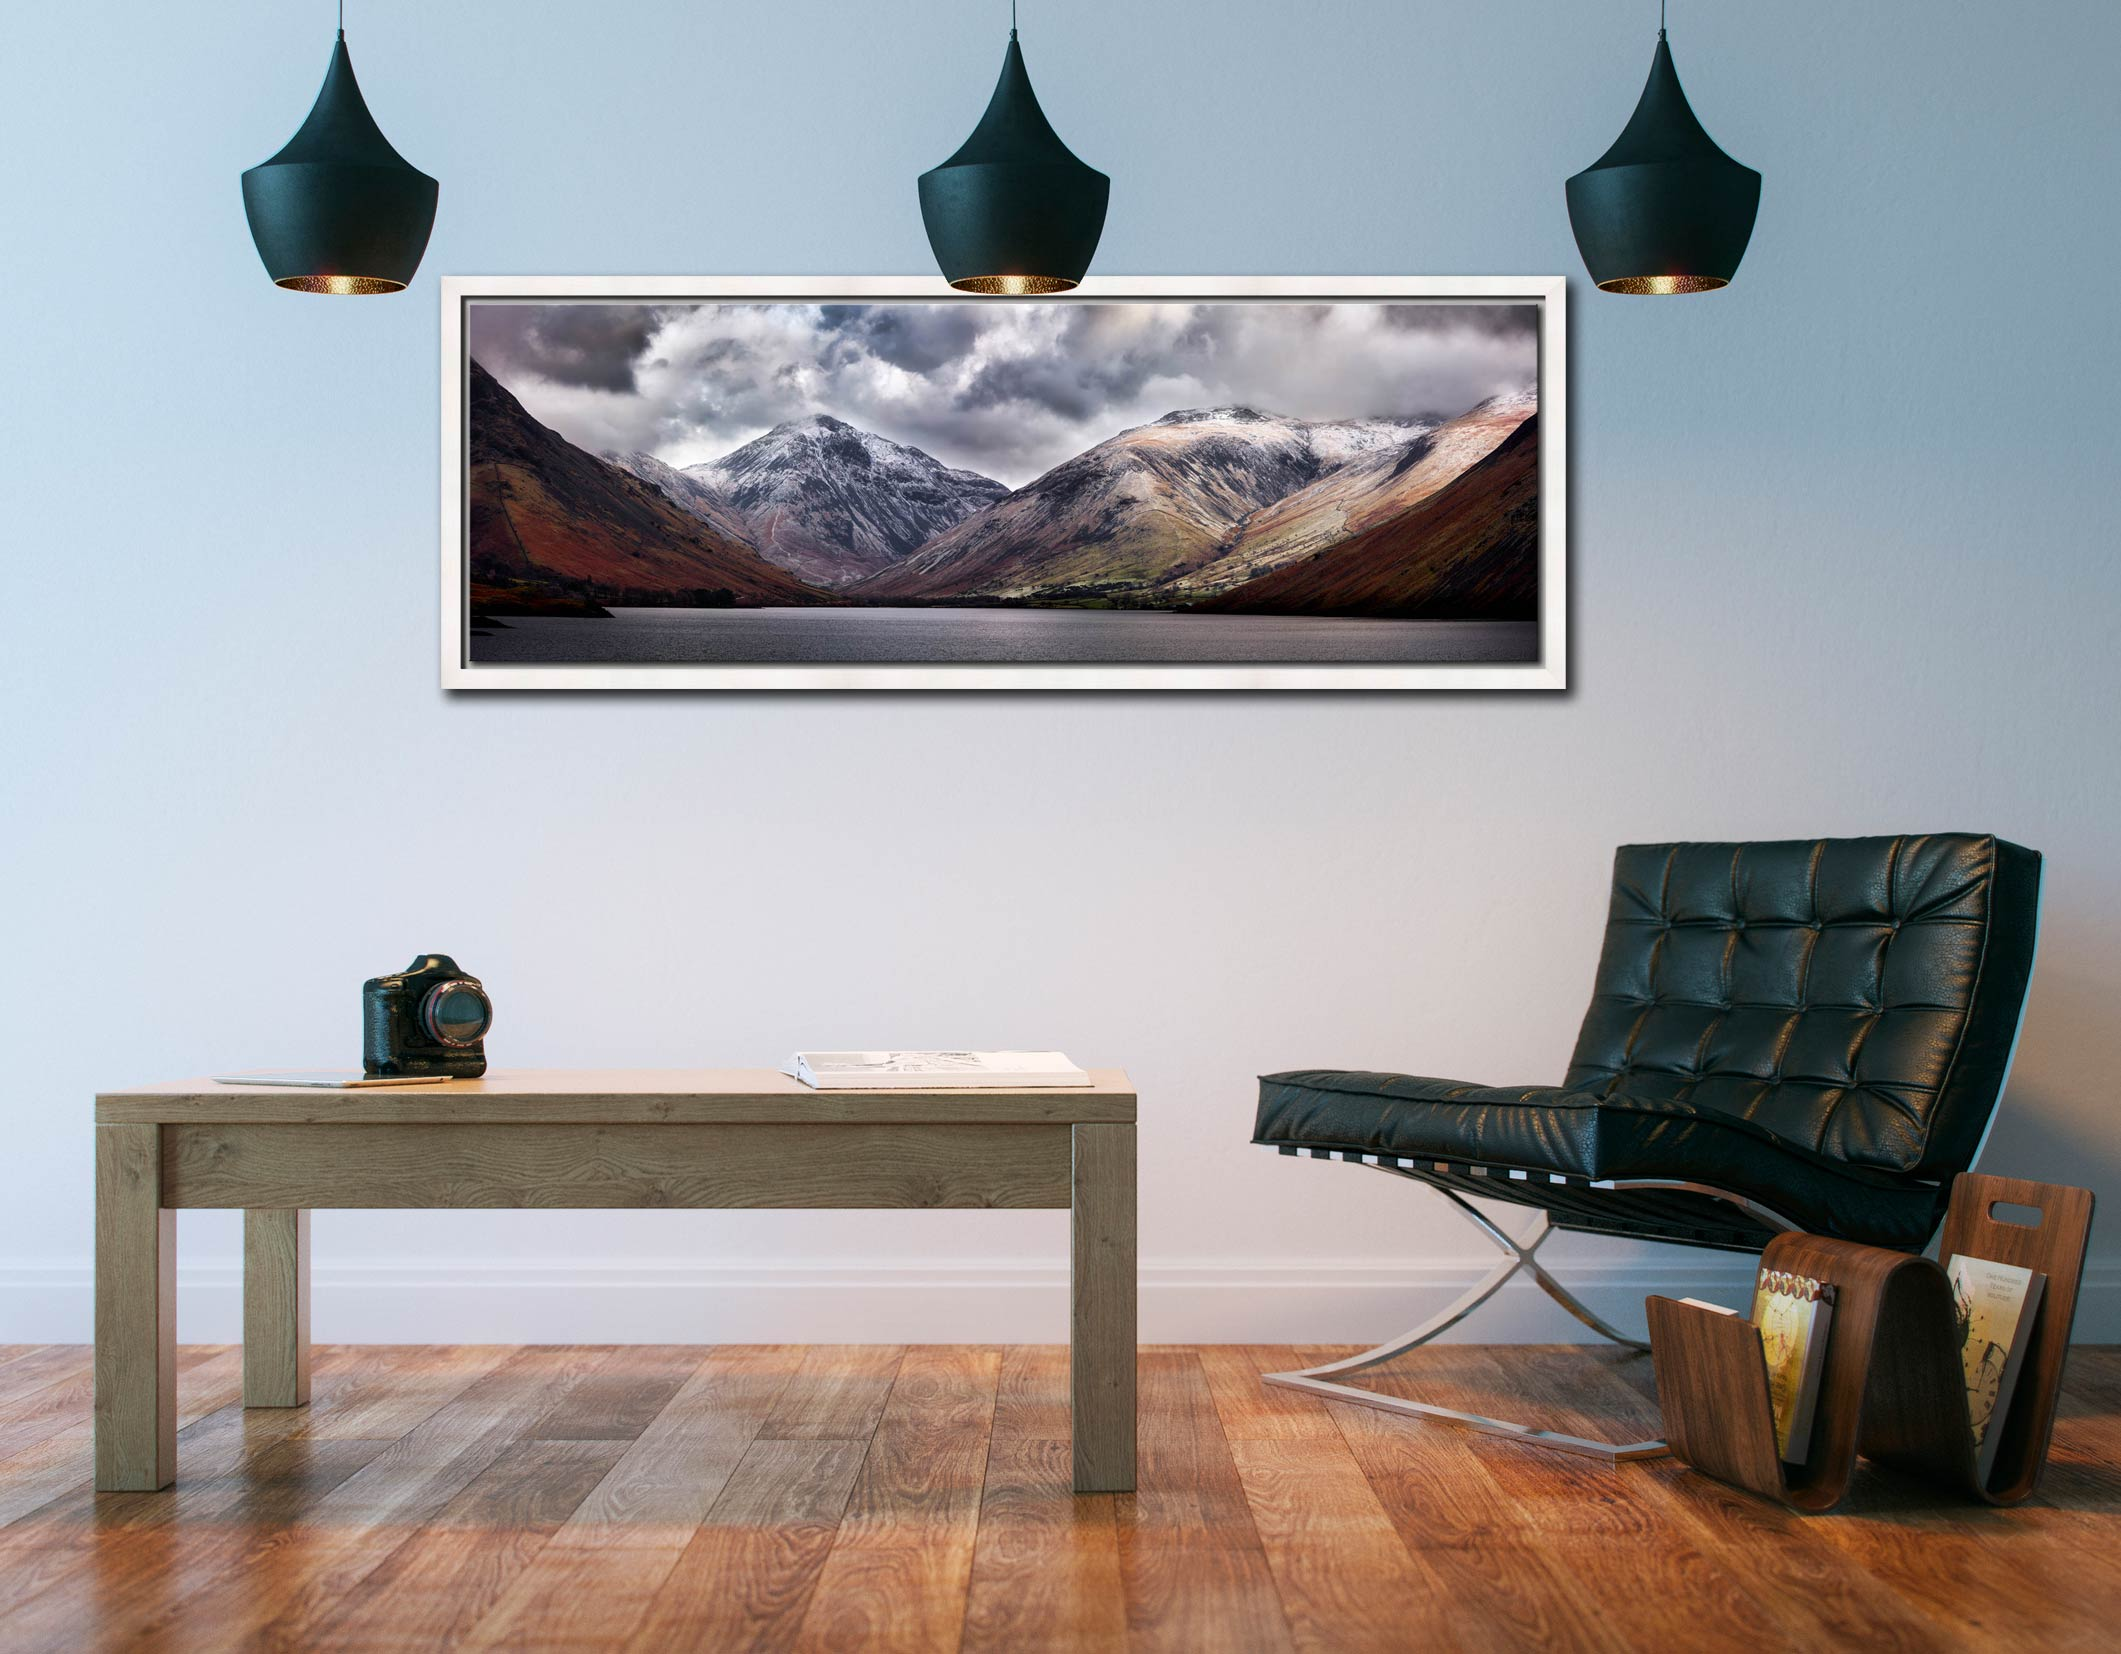 Great Gable and Lingmell - White Maple floater frame with acrylic glazing on Wall